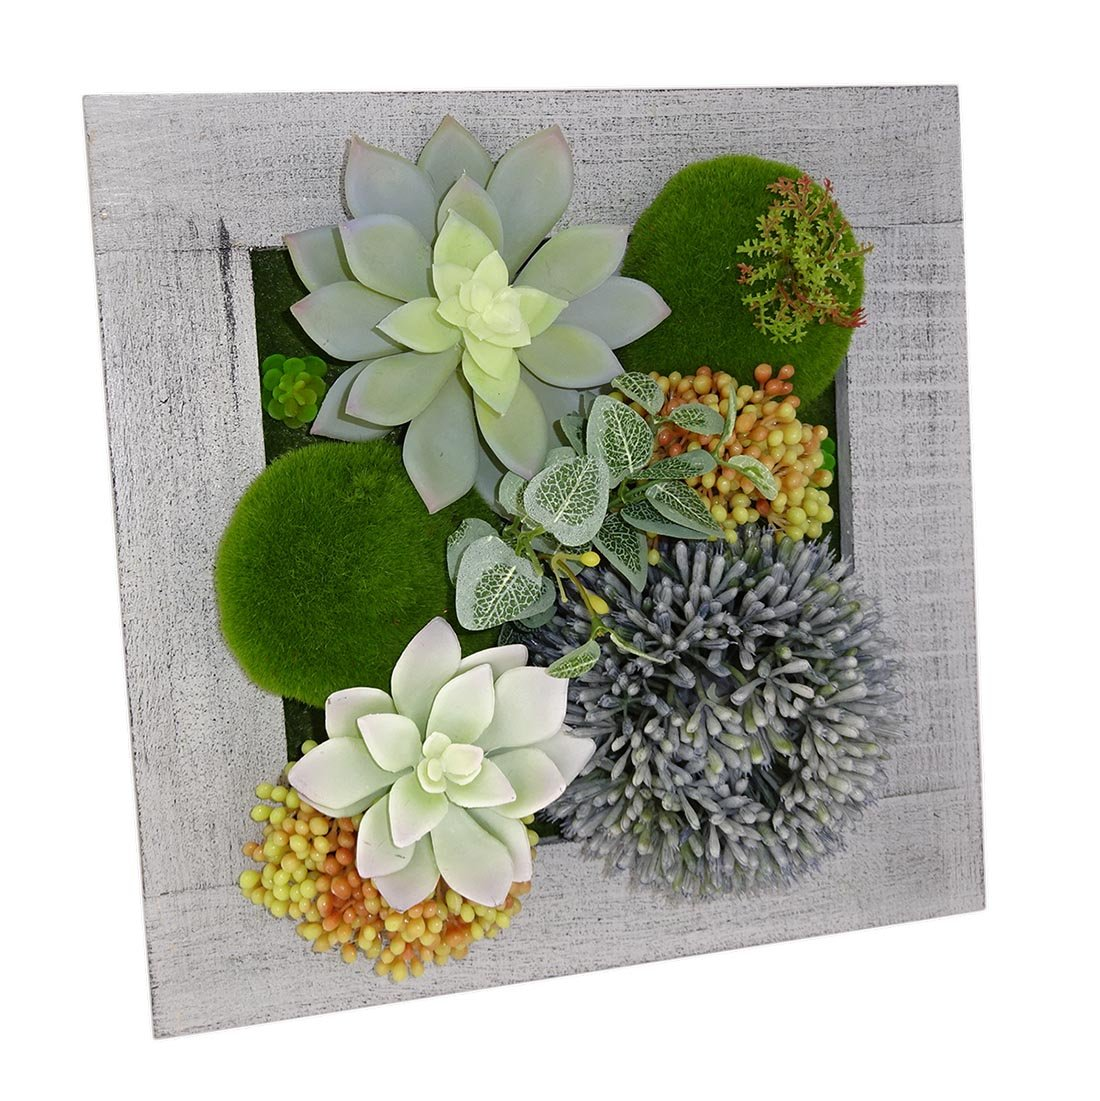 Kumii Wall Mounted 3D Artificial Flowers With Wood Frame and Wall Hanging, Art Wall Decor for Office and Home (Gray)